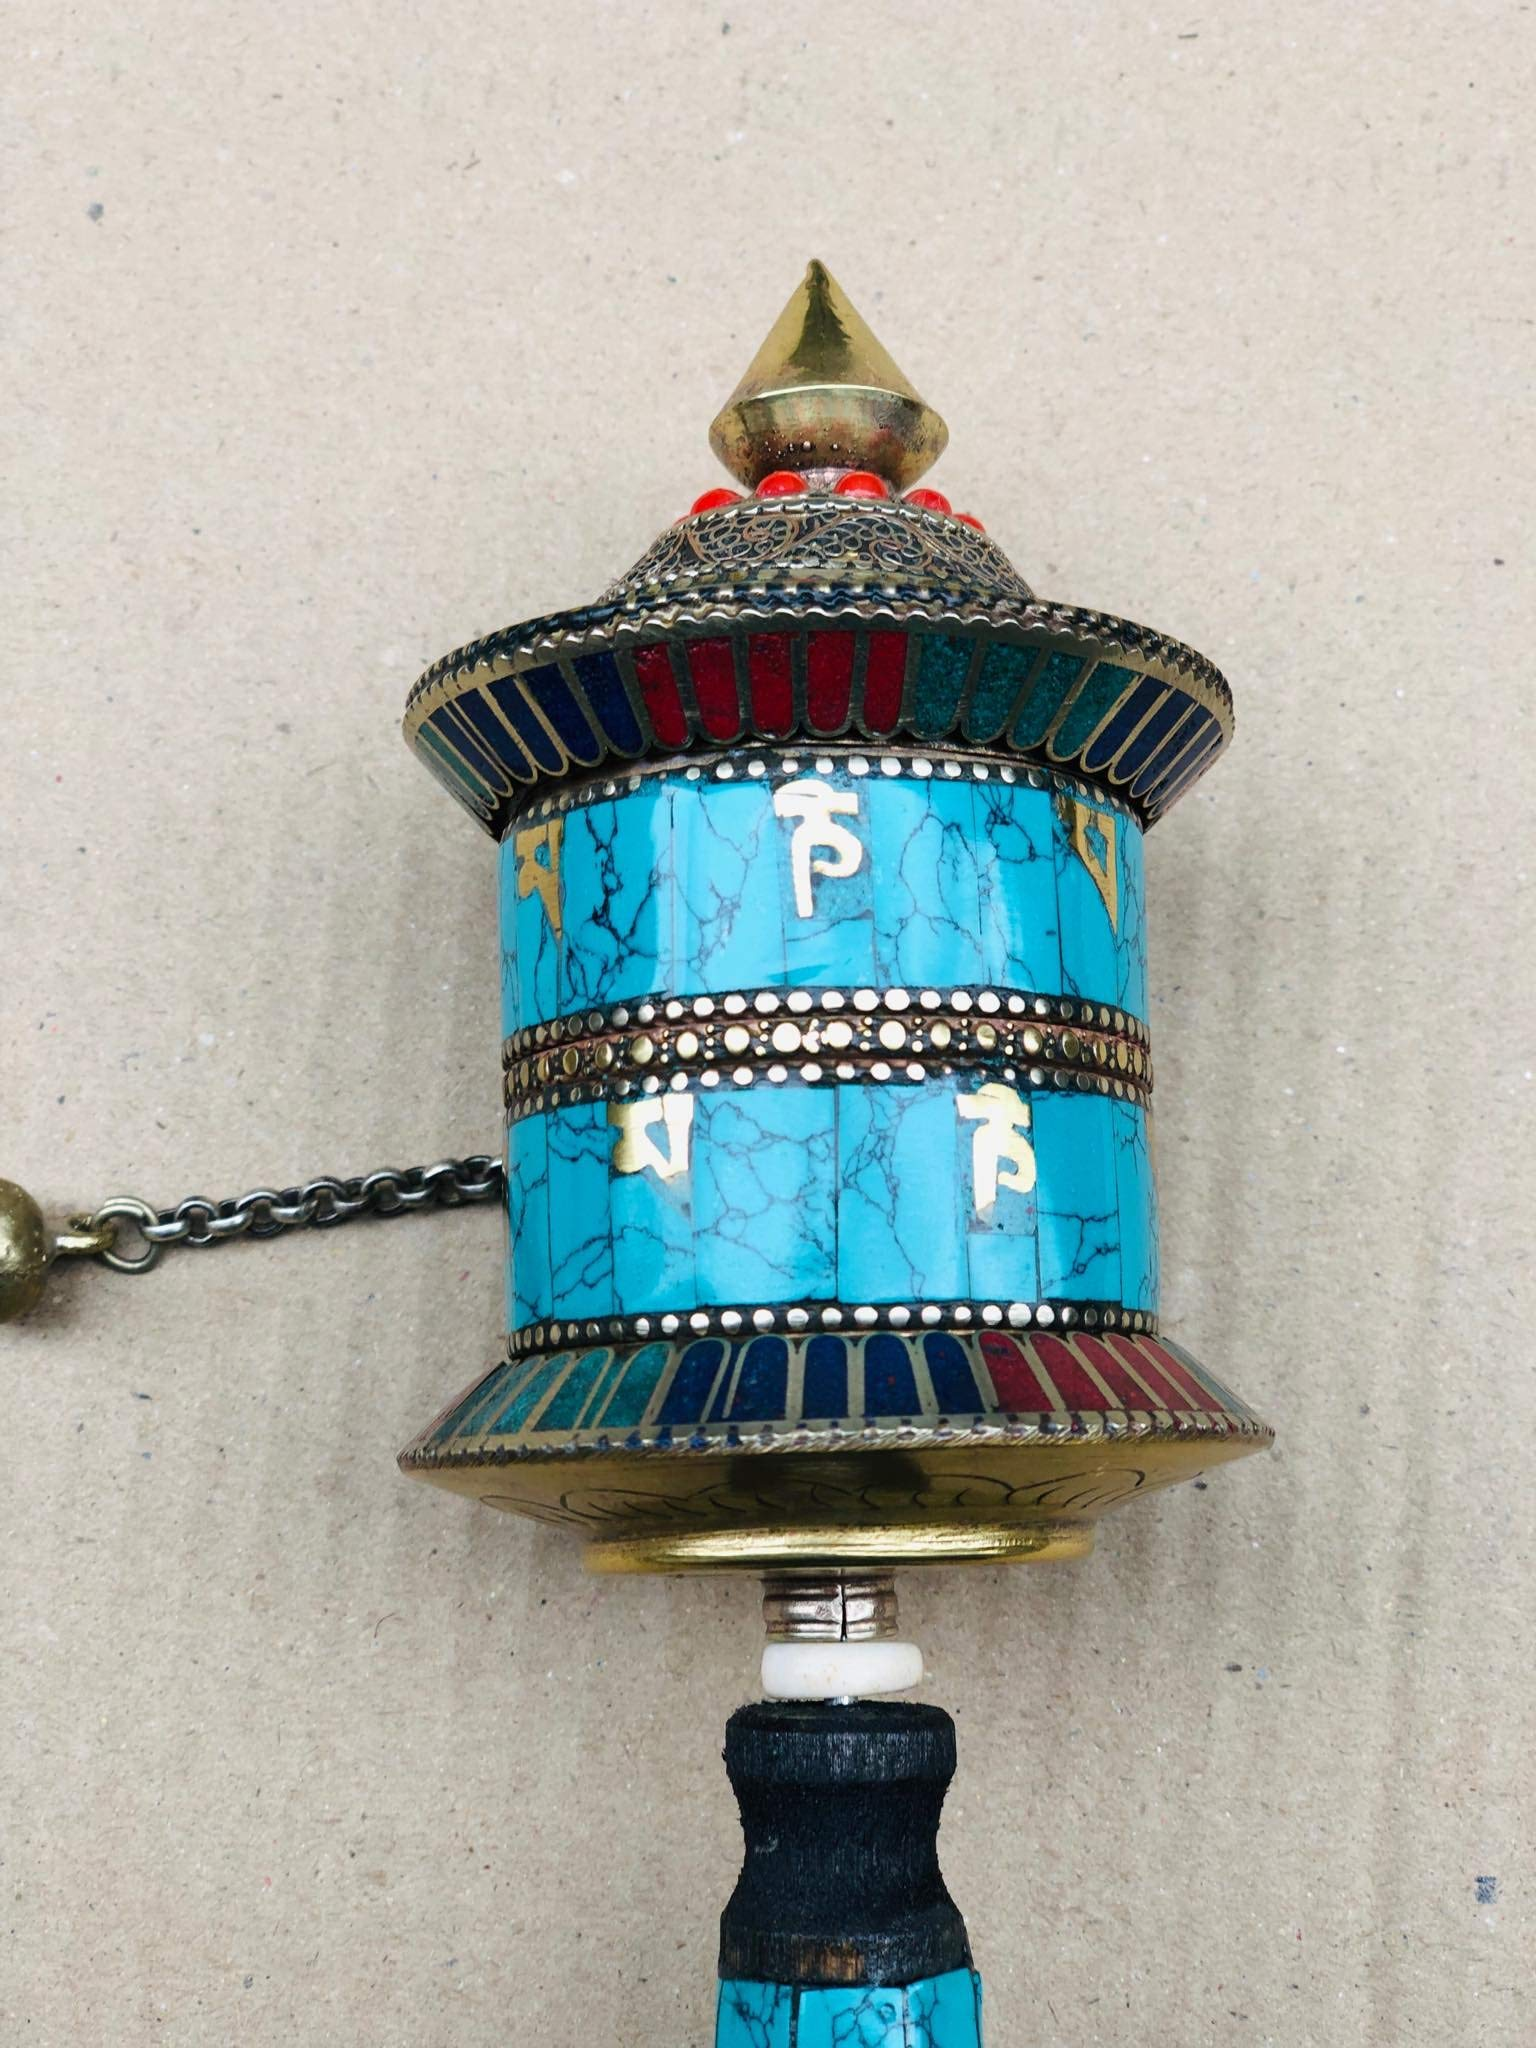 Buddhist Brass & Stone Set Hand-held Prayer Wheel - 9 Inch with Authentic Wooden Handle by Singing Bowl Nepal (Image #8)